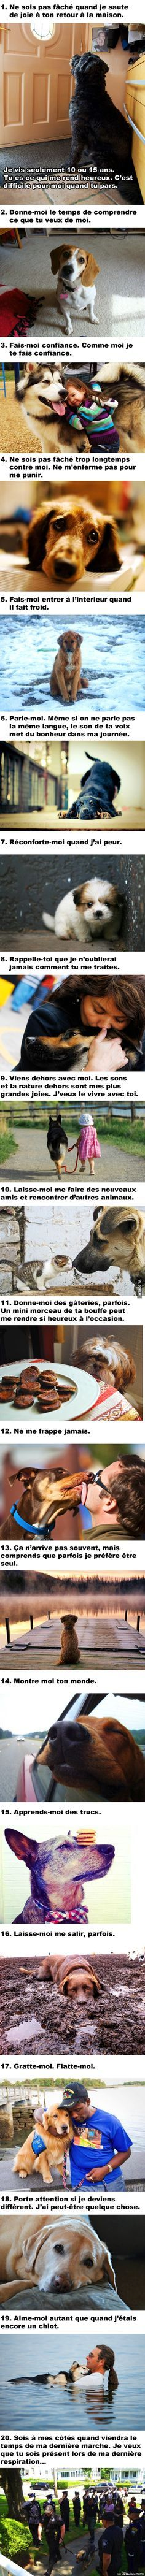 20 choses que tous les propriétaires de chien devraient savoir. If you speak french like me you probably well know what there talking about.